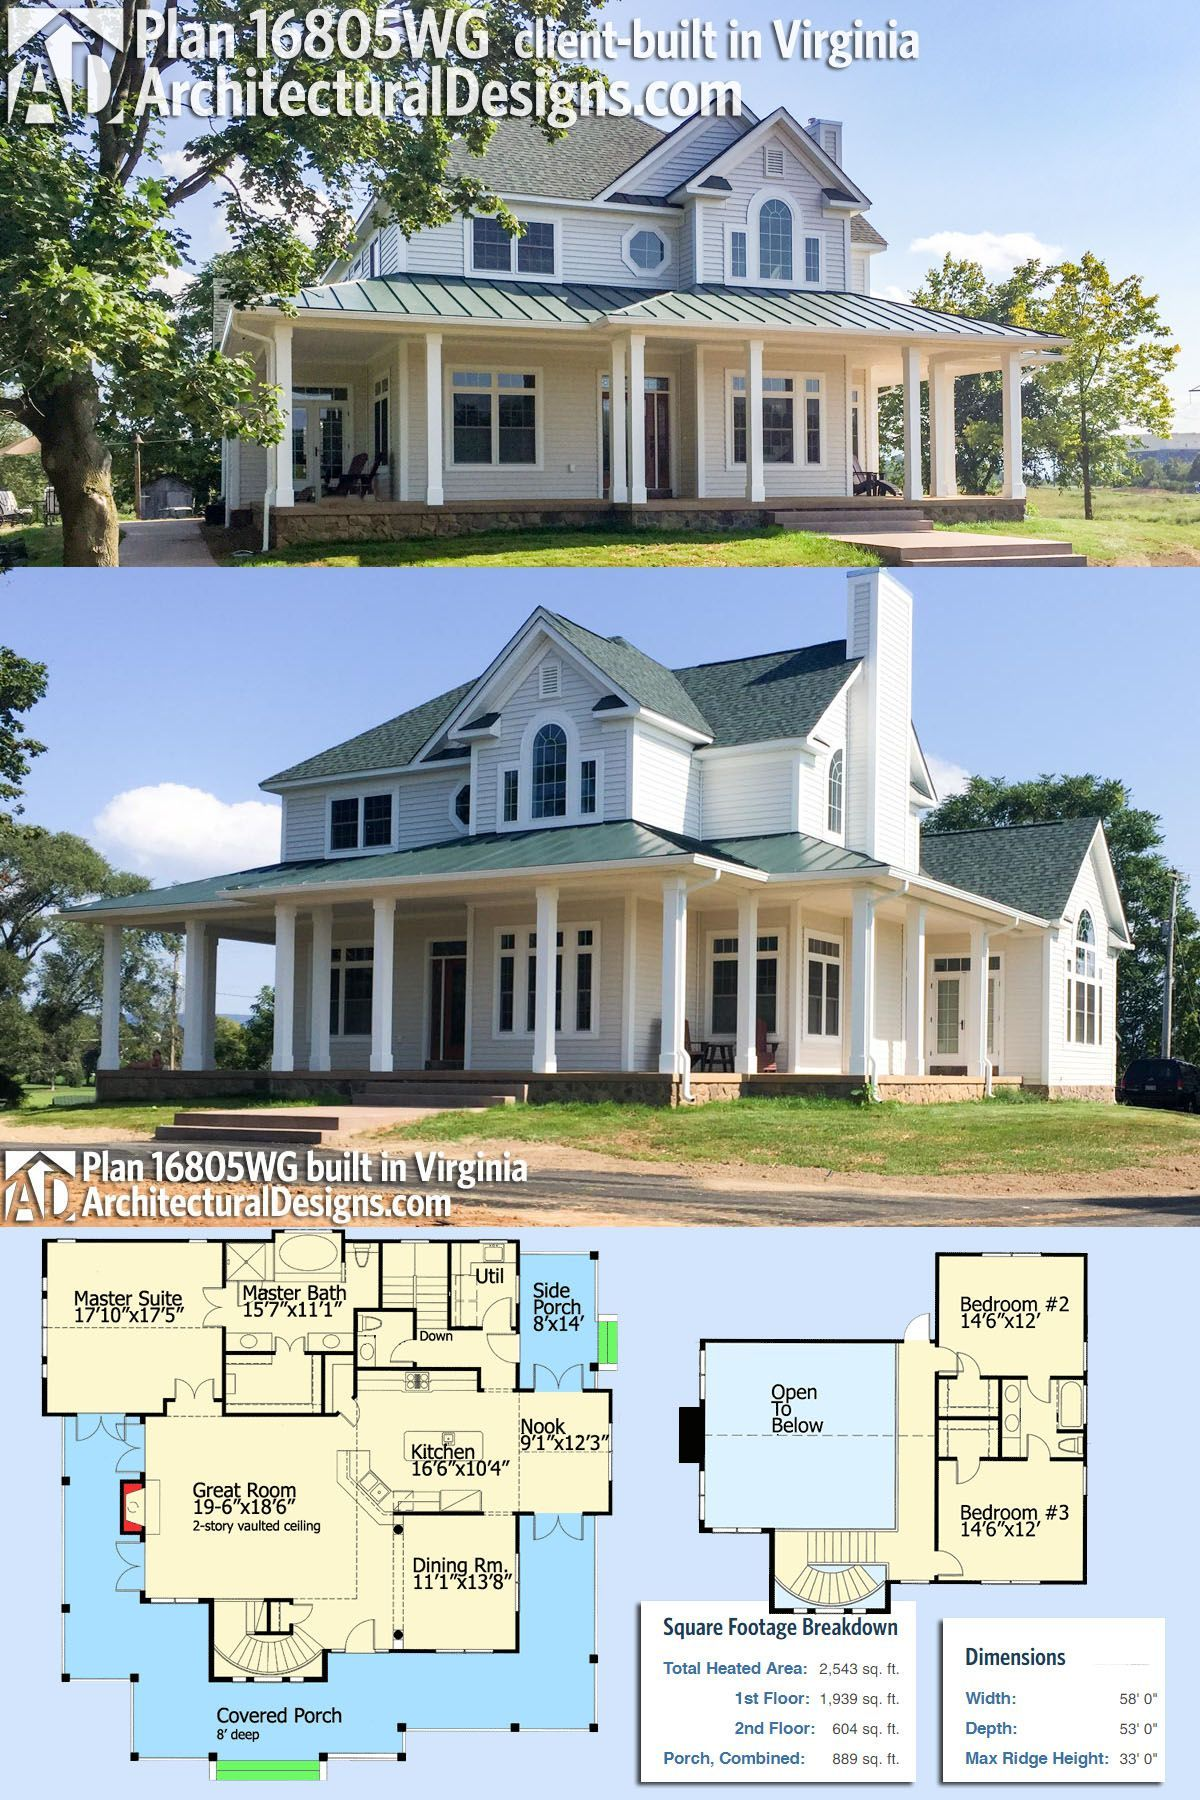 Our Client Built Architectural Designs House Plan 16805wg True To Spec In Reverse Orientation The Porch House Plans Country House Plans House Plans Farmhouse